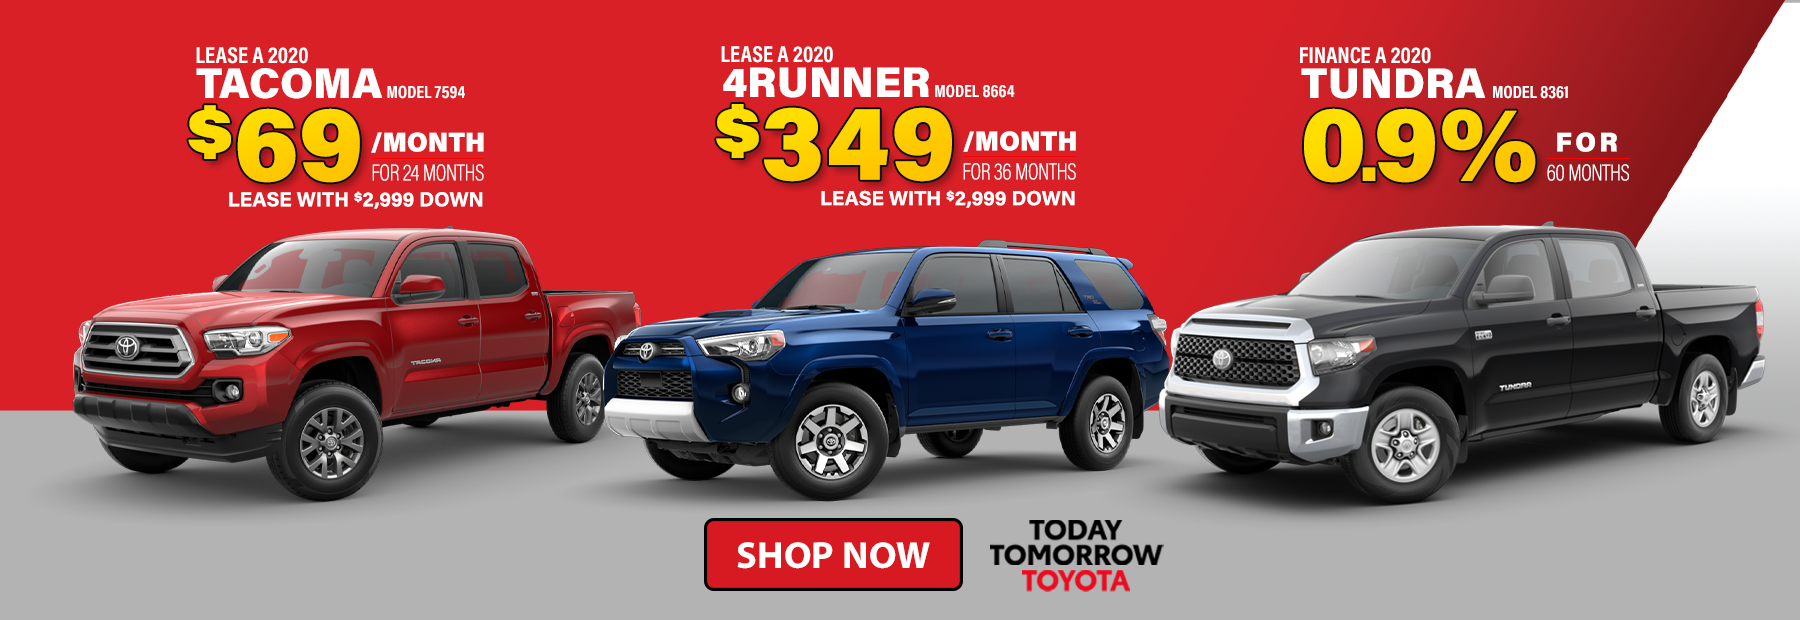 New 2020 Toyota Tacoma 4Runner Tundra Lease Deals in Cincinnati, OH